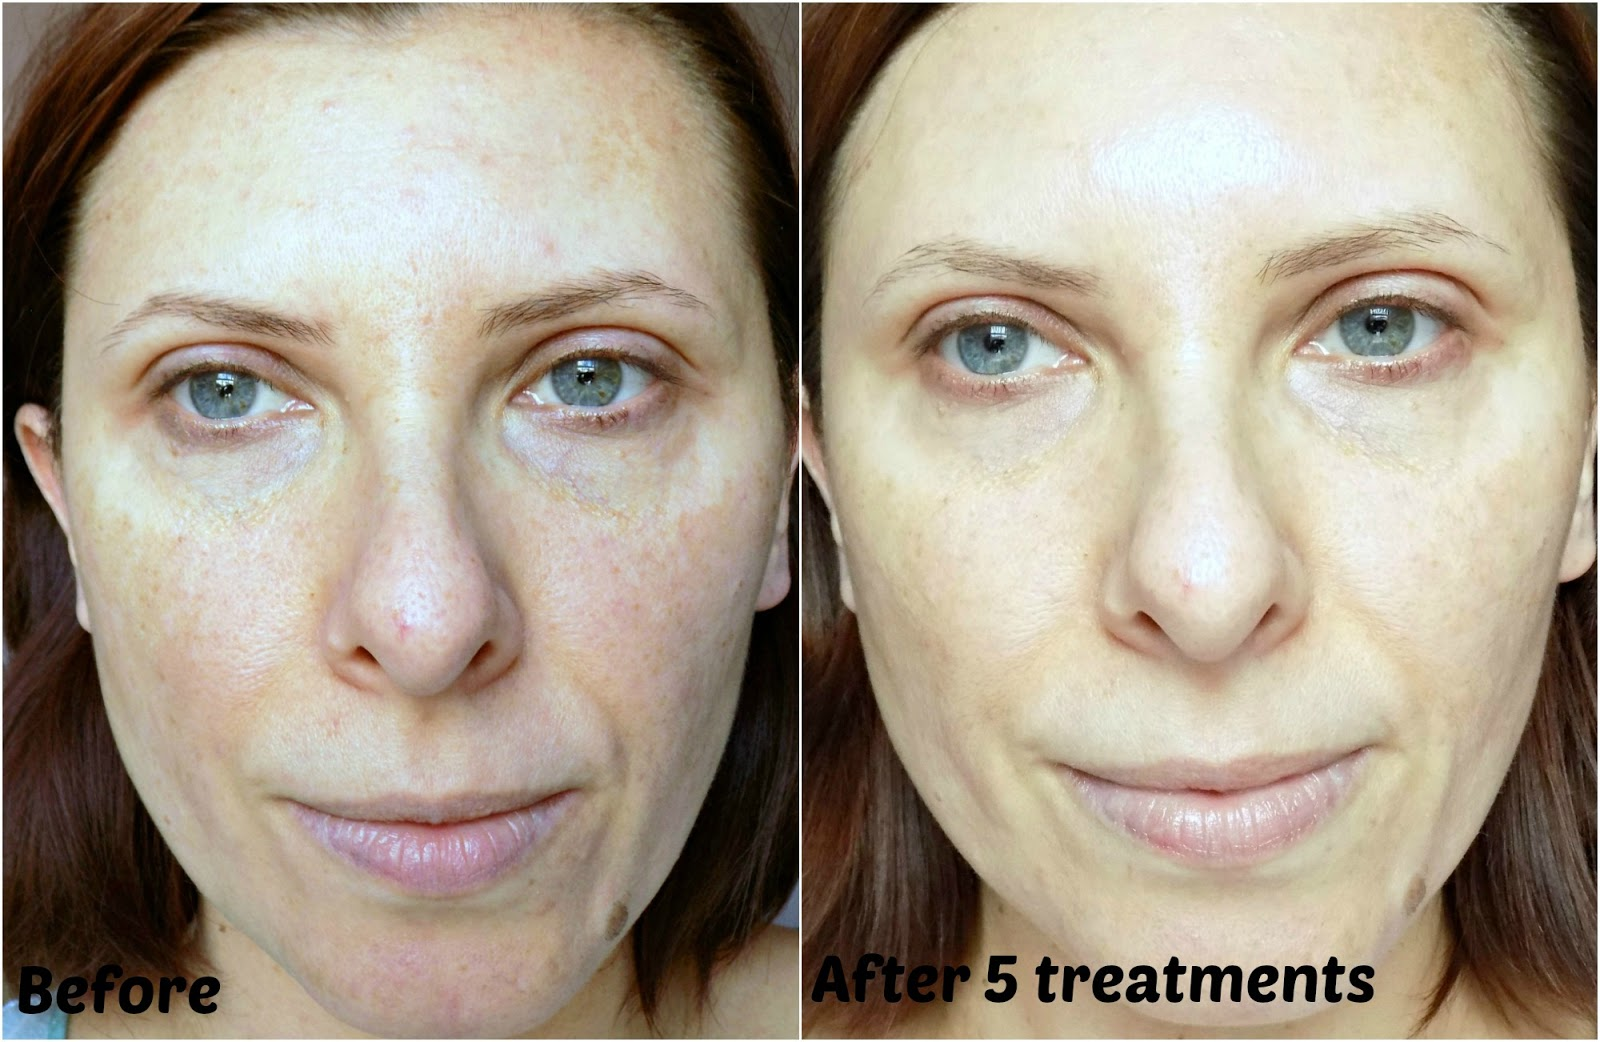 PMD Personal Microderm, review and before & after photos